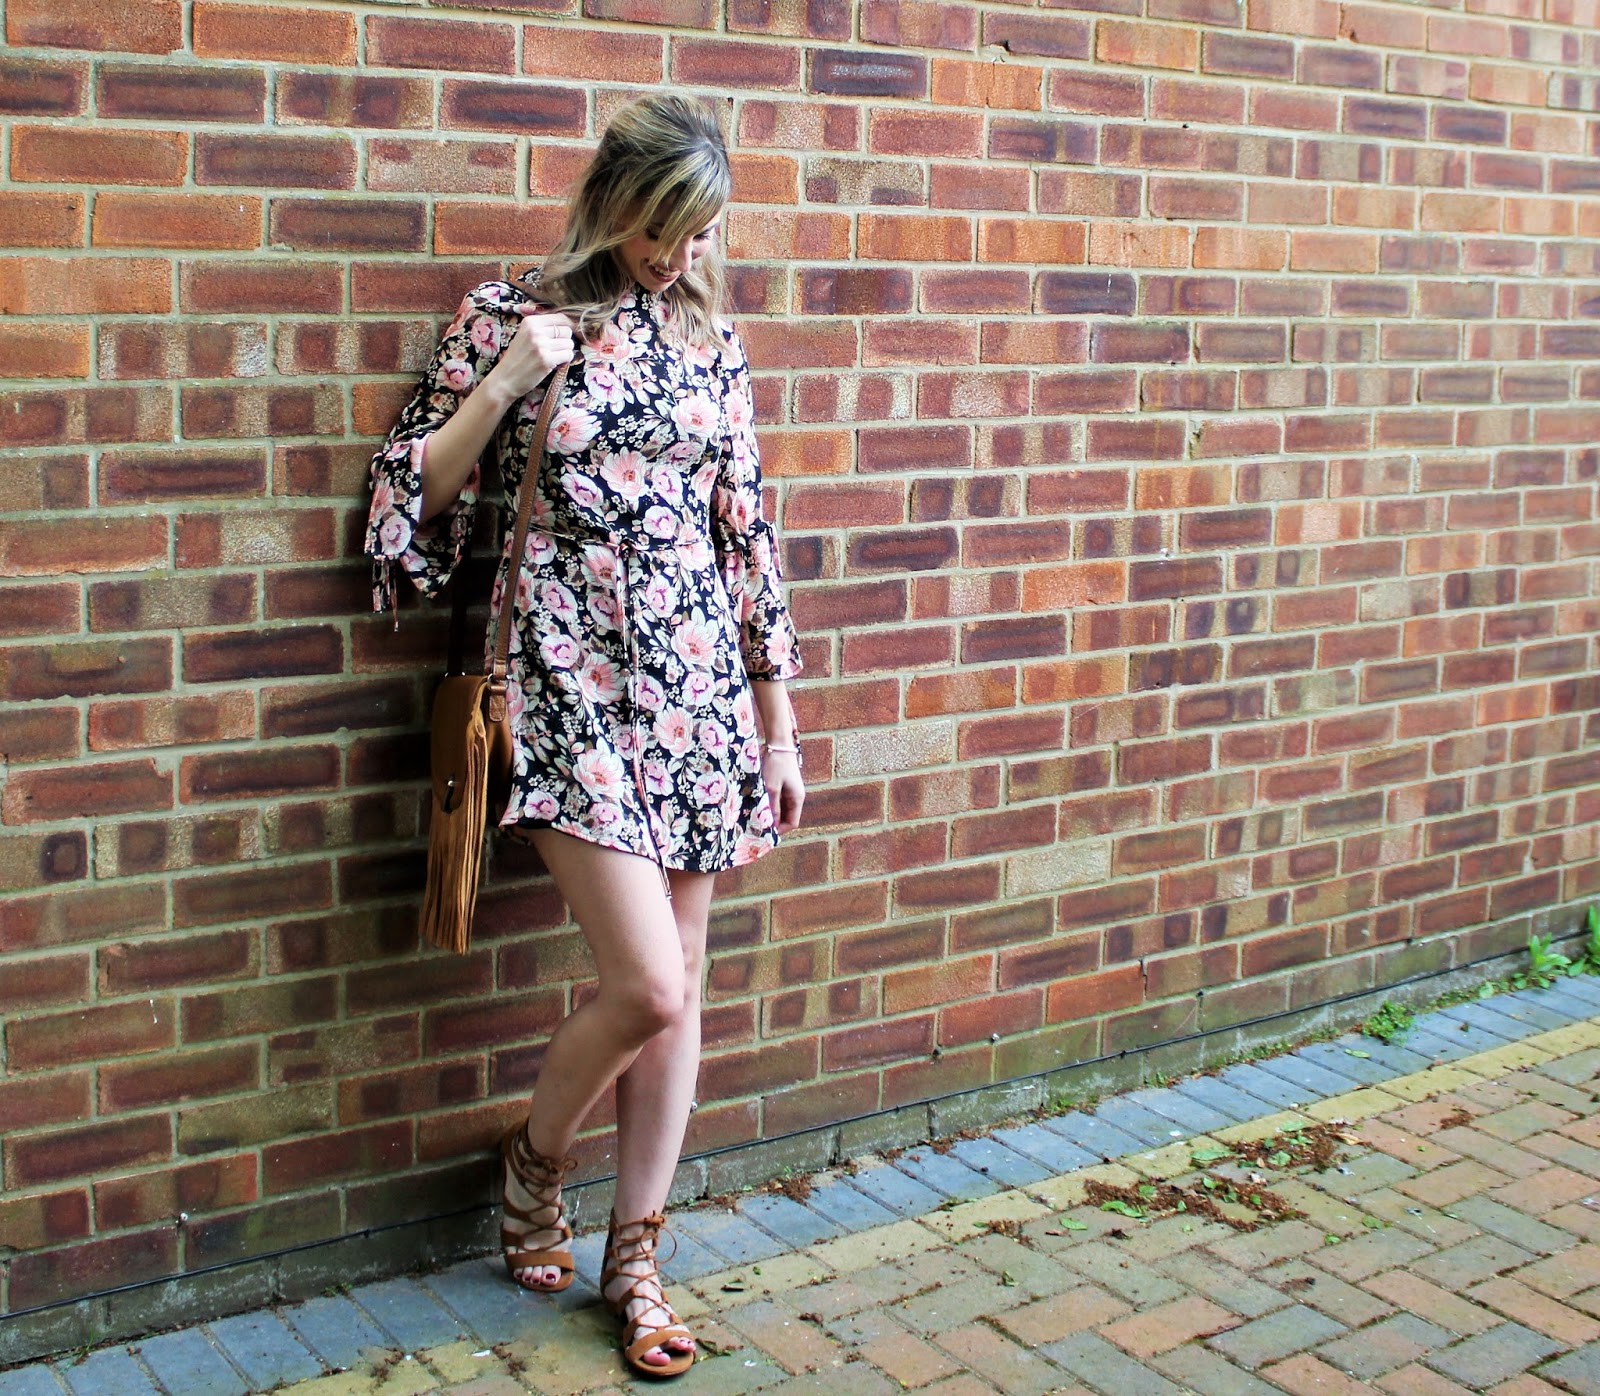 OOTD featuring a floral dress from Topshop and beaded bracelet from Lola Rose - 2